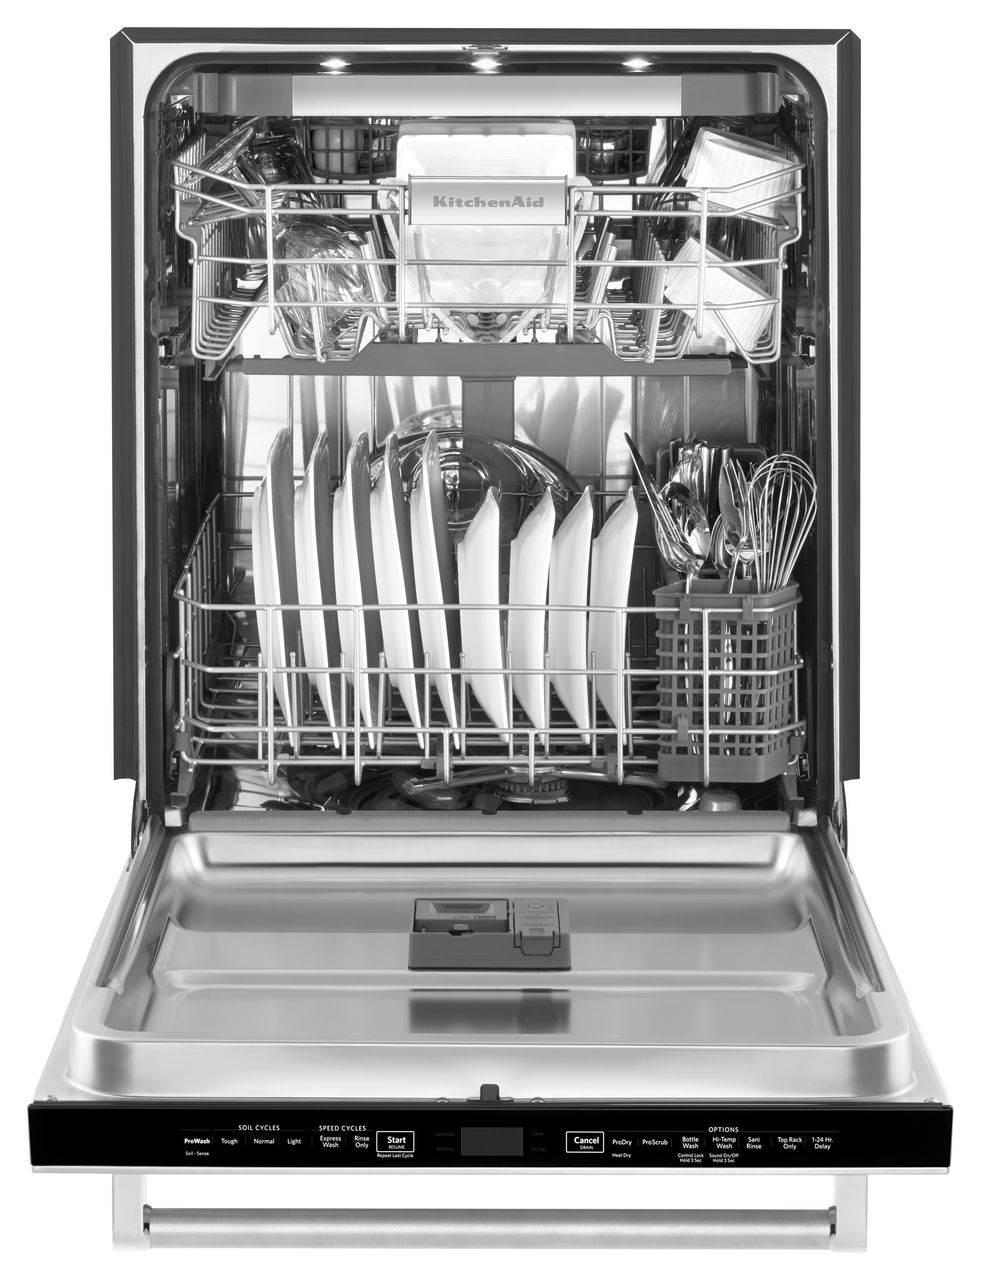 Kitchenaid Dishwasher Stainless Steel kitchenaid built-in stainless dishwasher - kdtm704ess